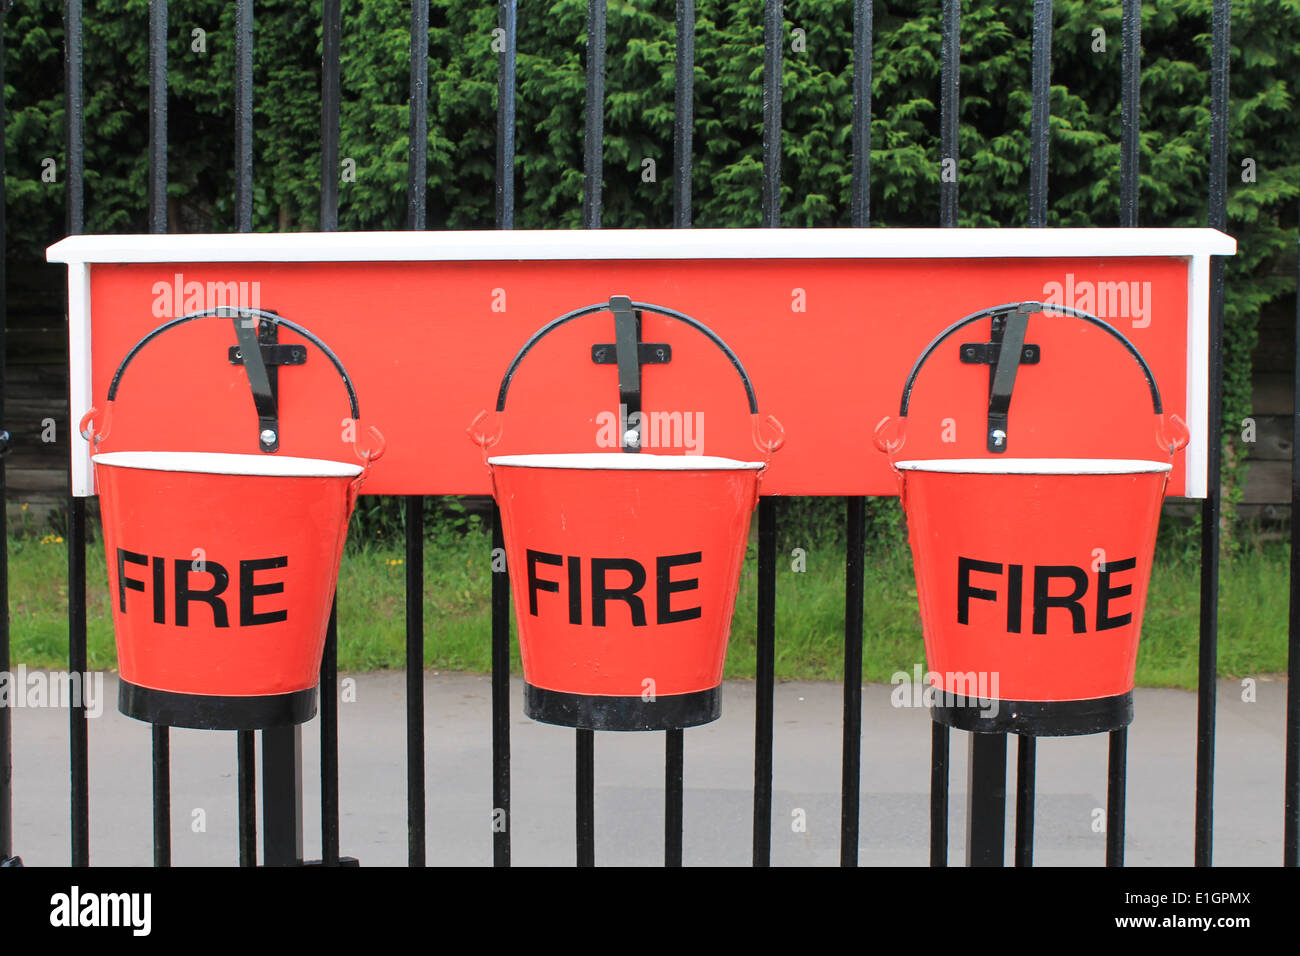 Fire safety buckets - Stock Image